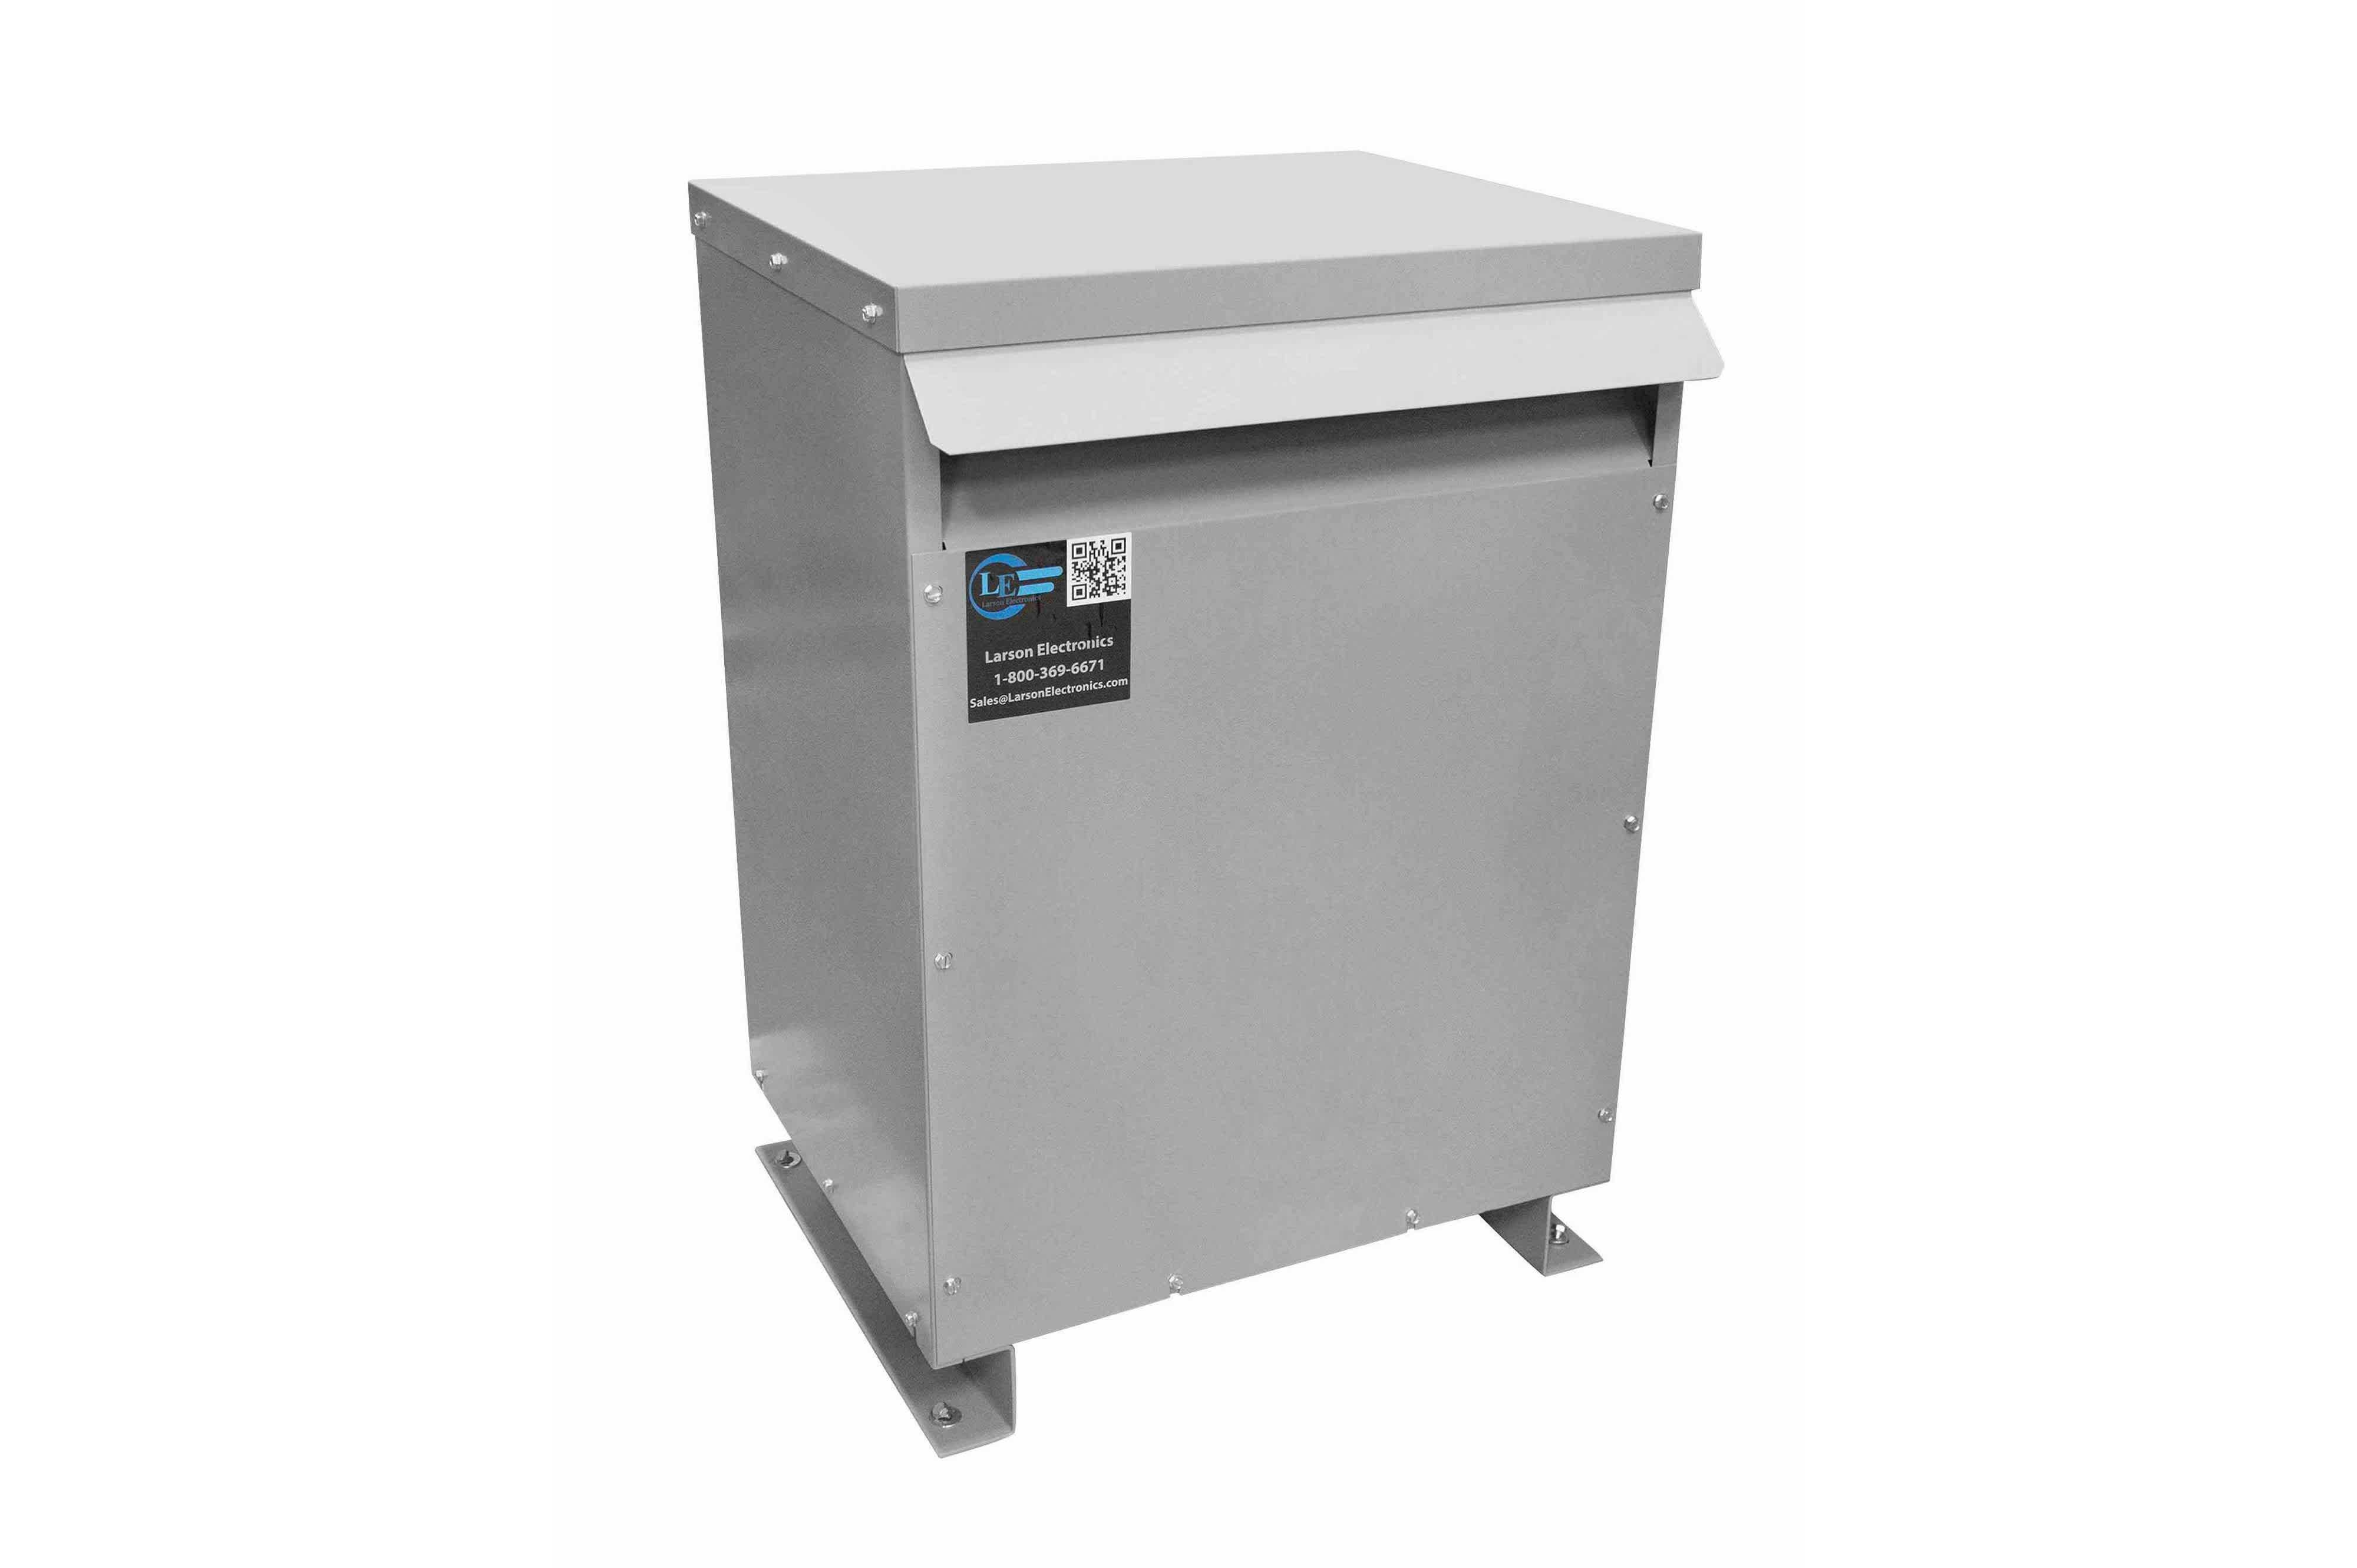 45 kVA 3PH Isolation Transformer, 575V Delta Primary, 400V Delta Secondary, N3R, Ventilated, 60 Hz